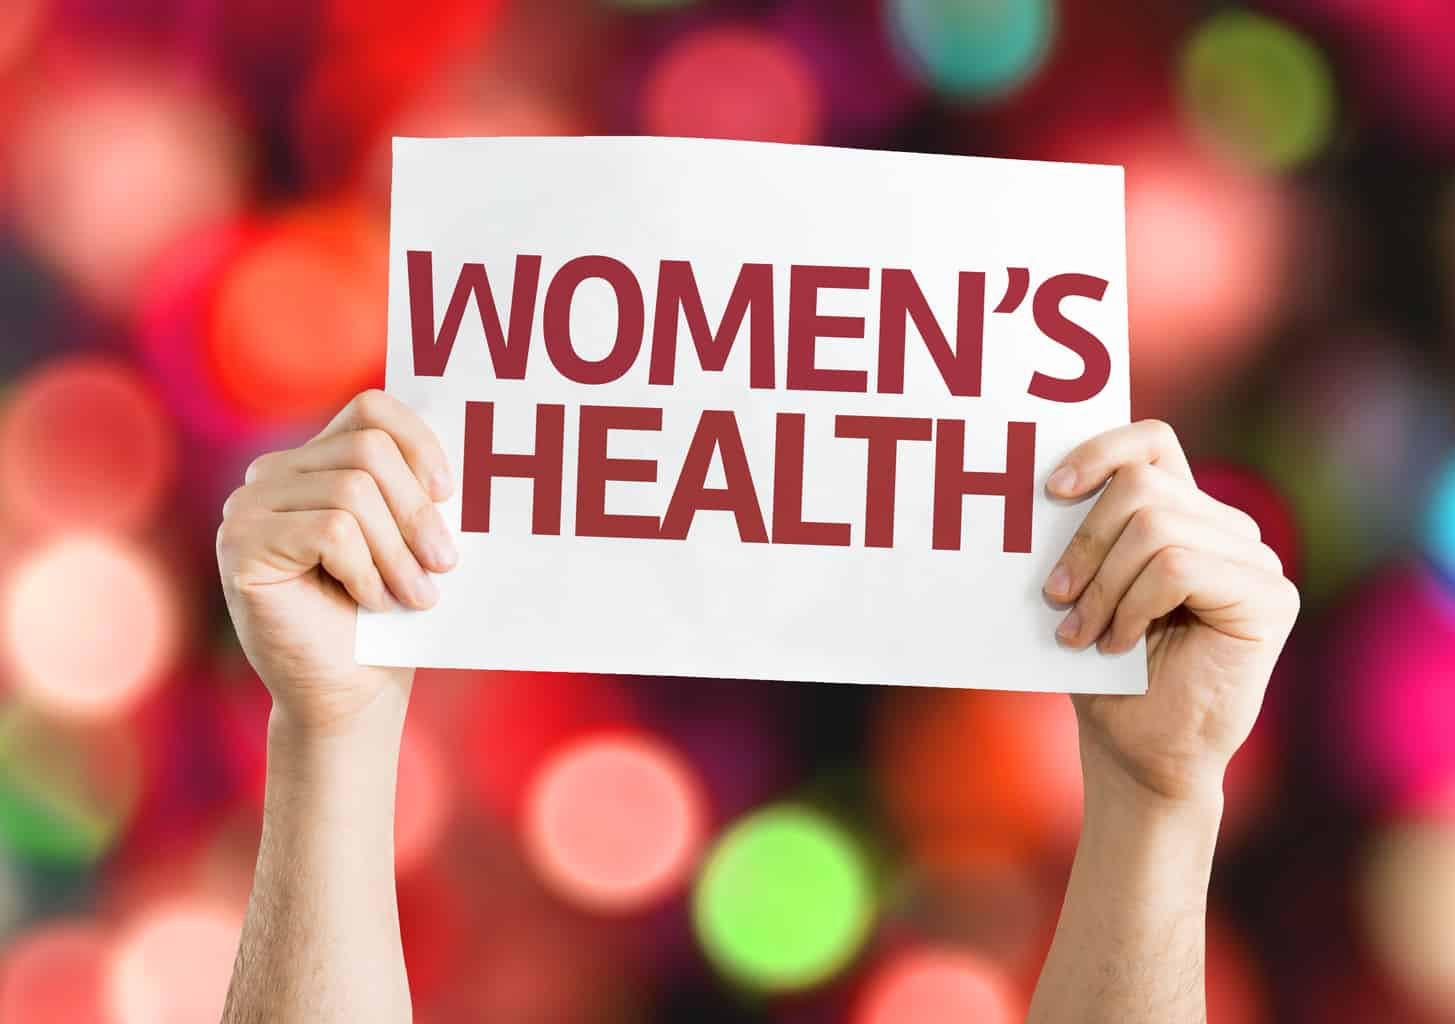 Women's Health card with colorful background